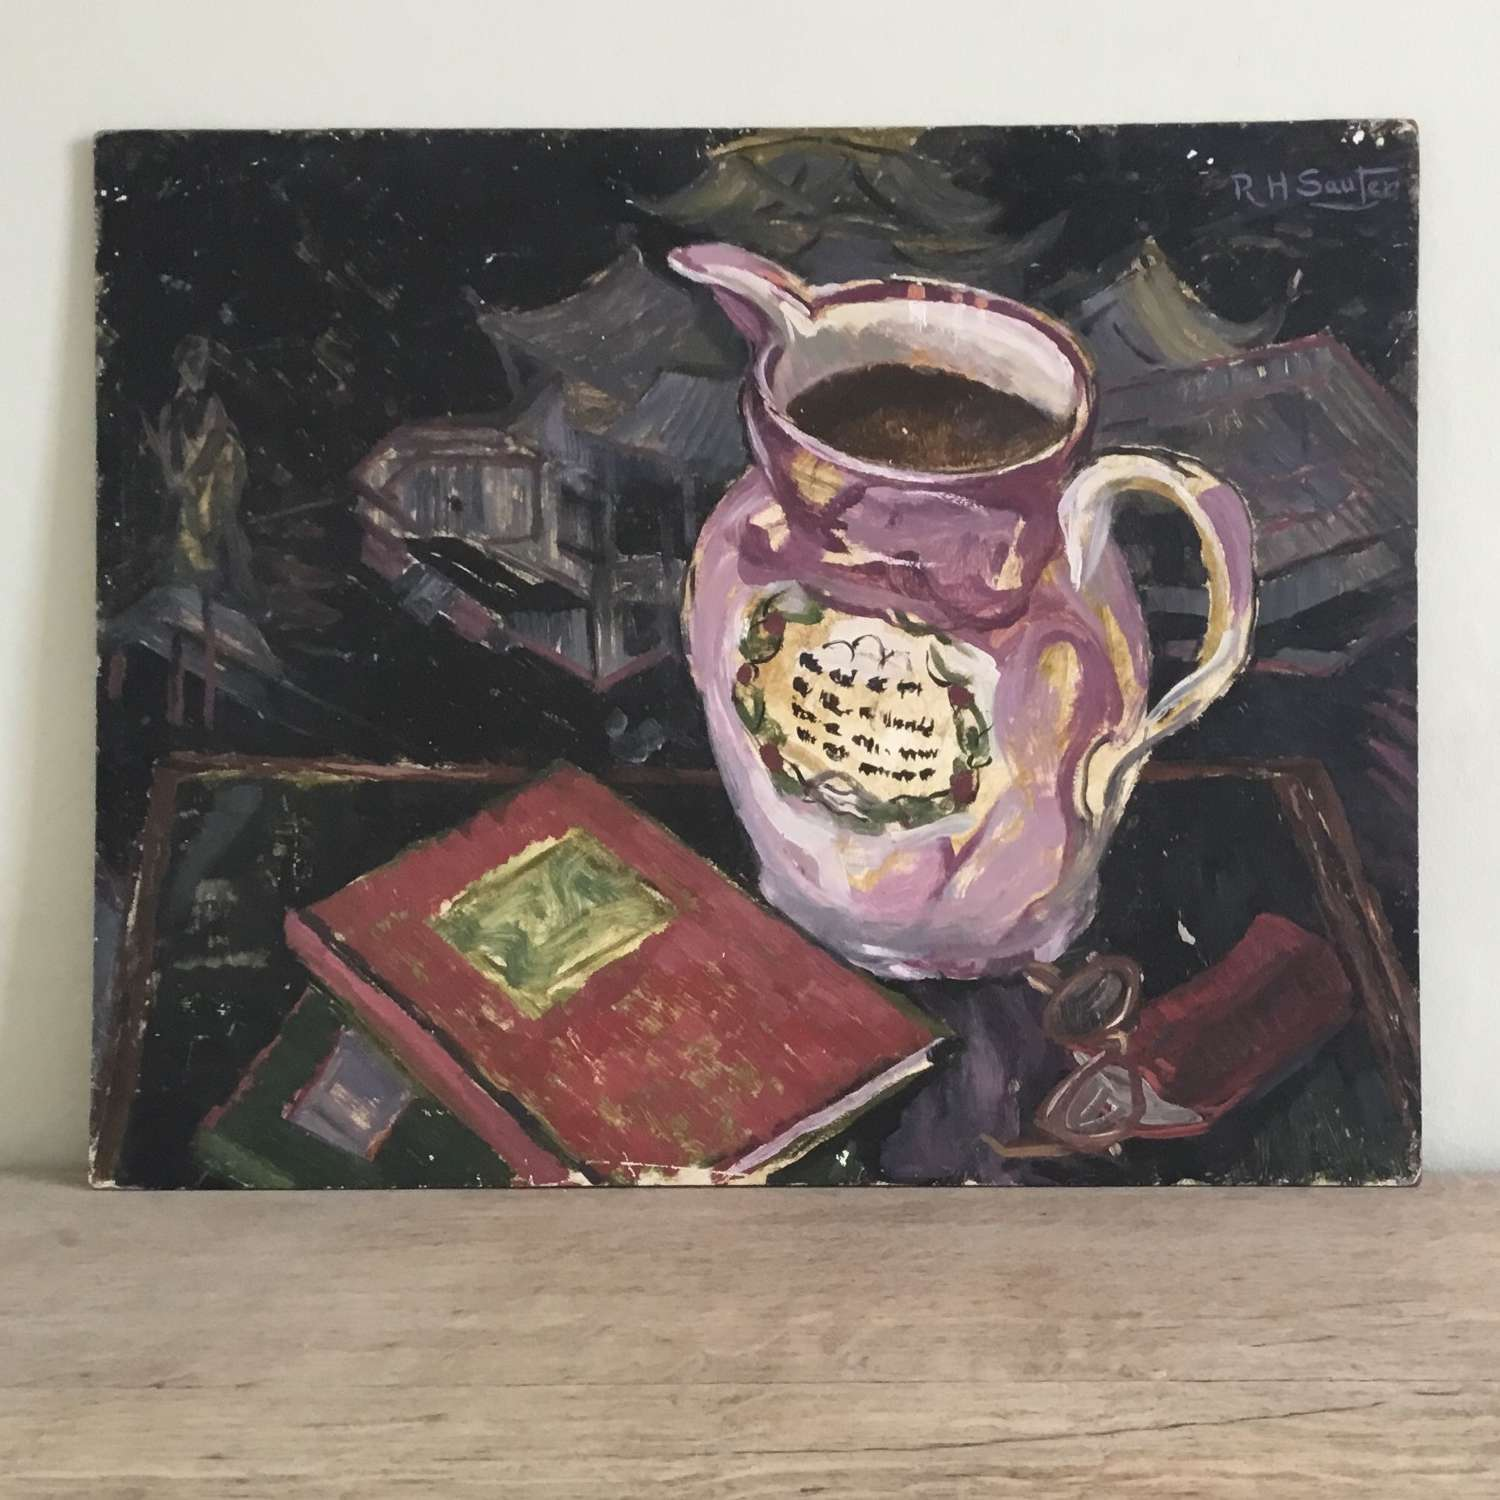 Jug and Book by RH Sauter